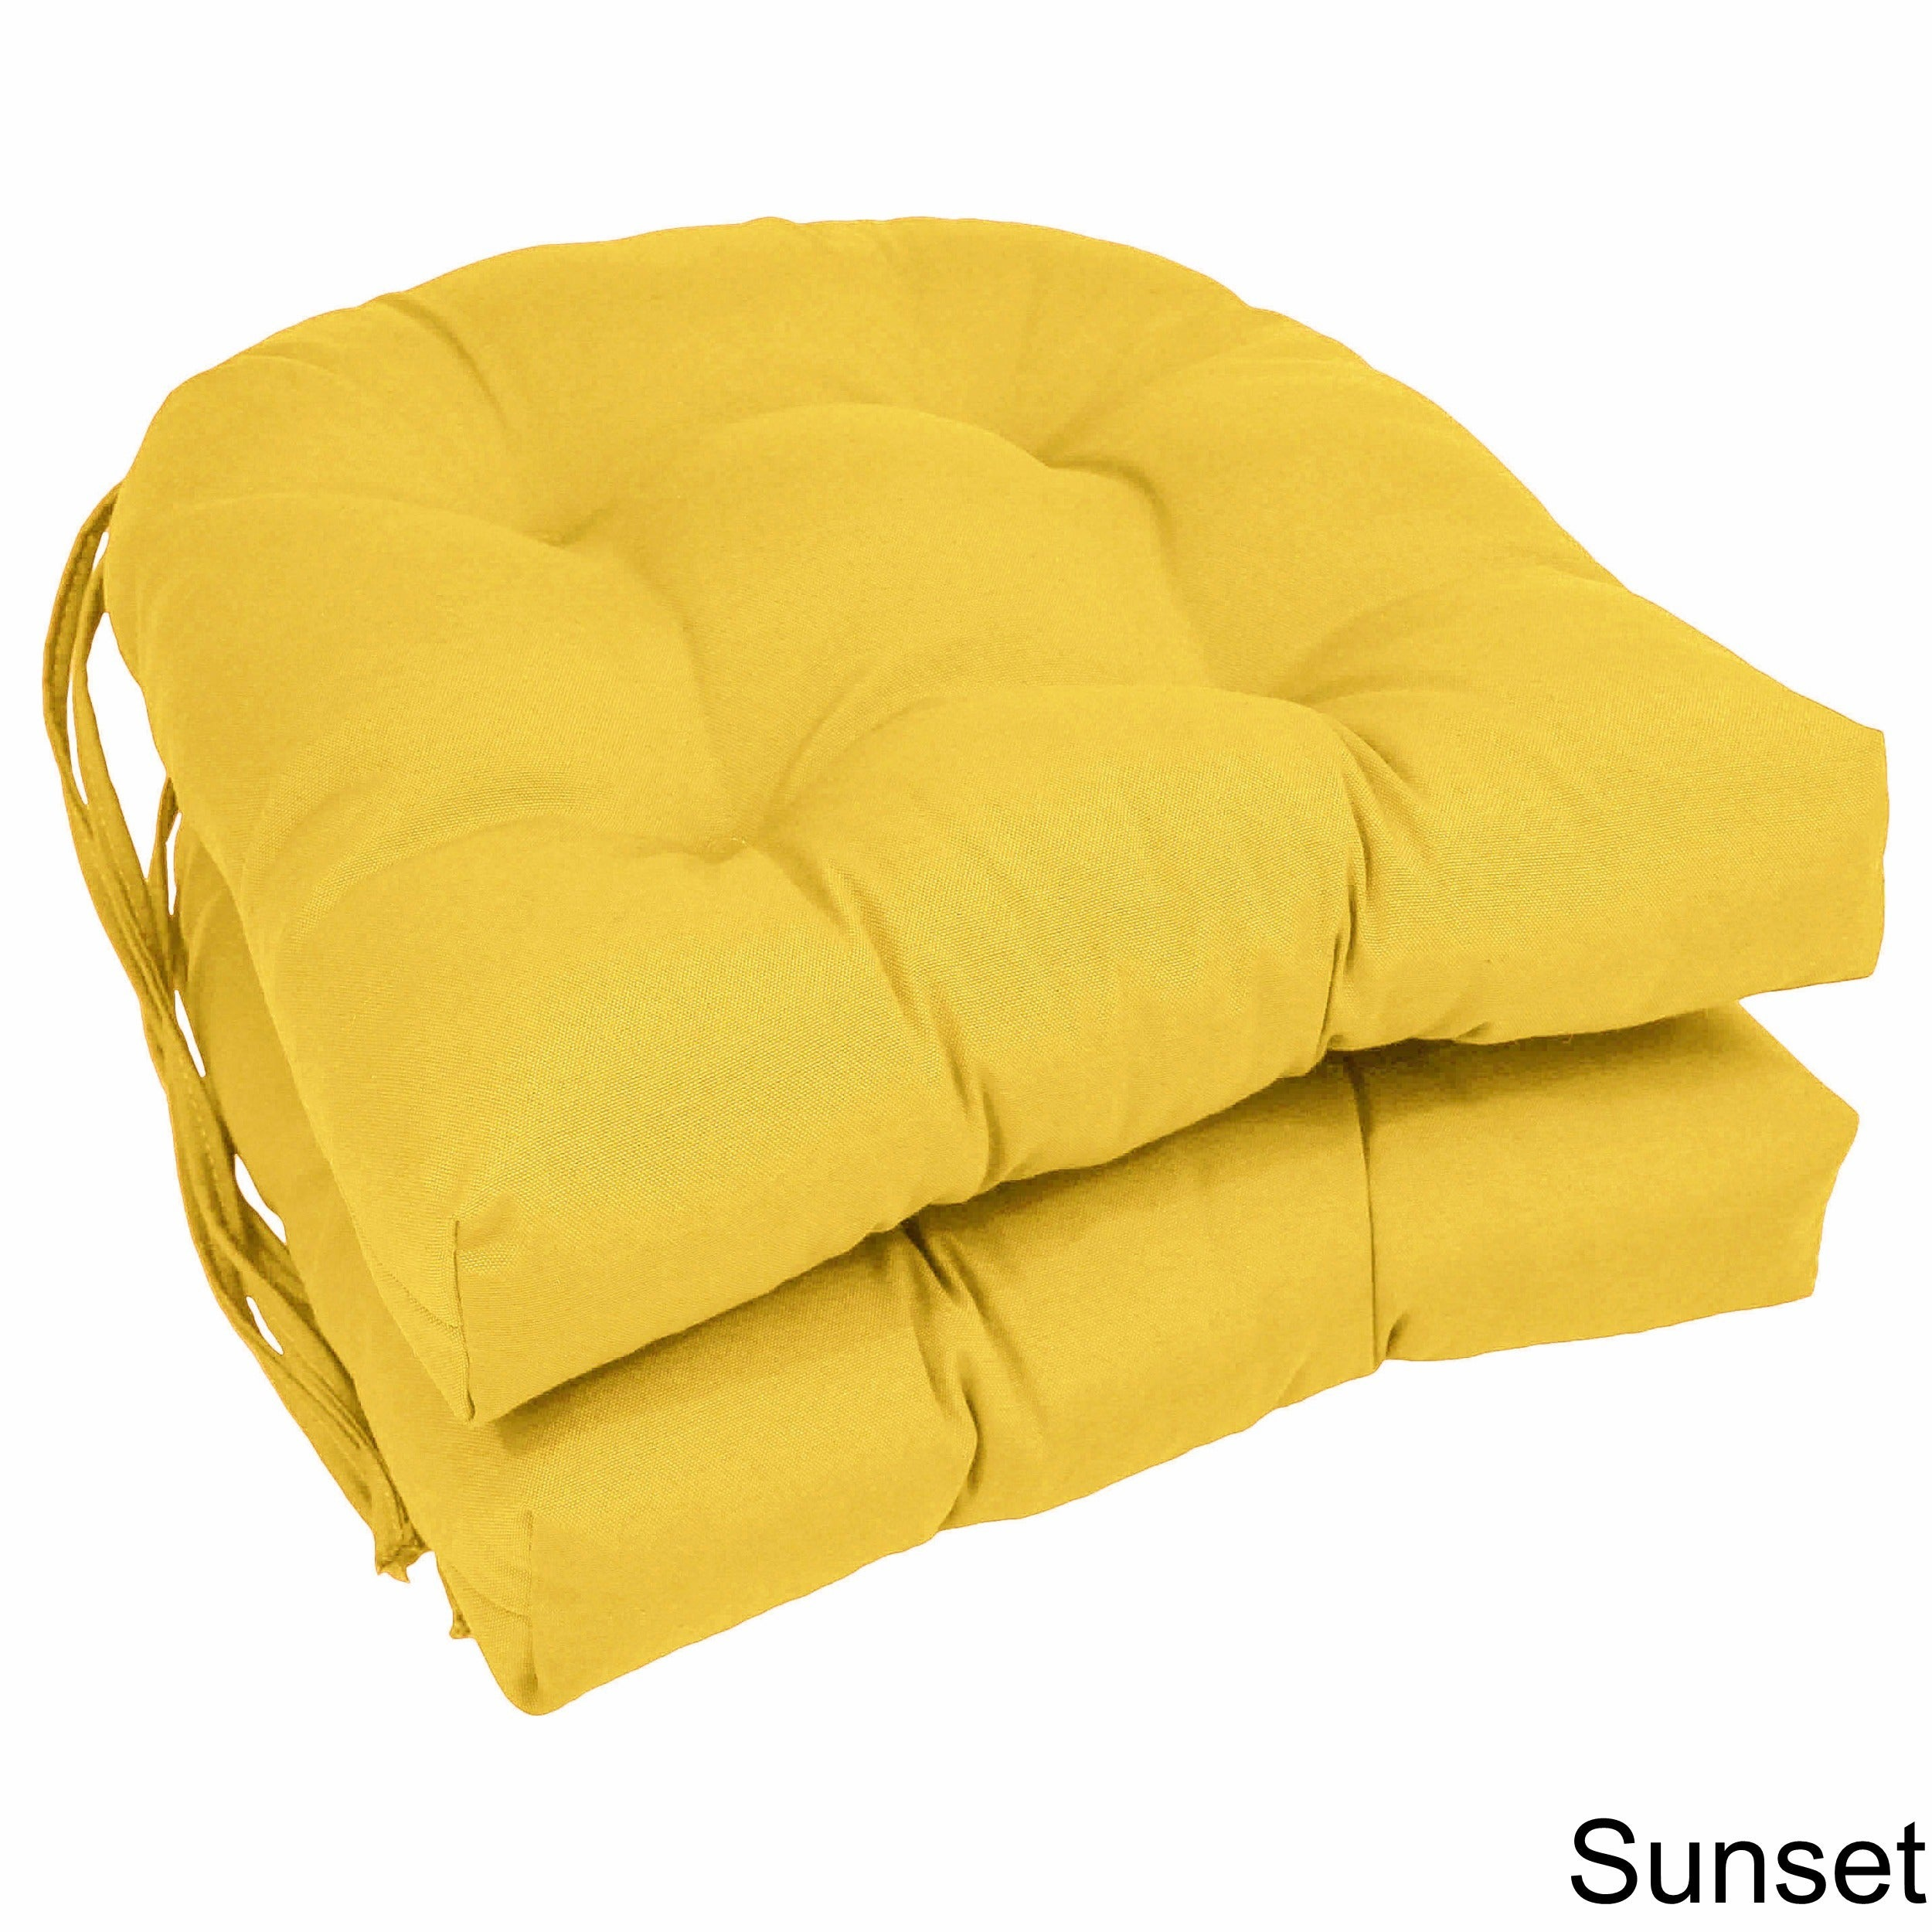 Blazing Needles Twill 16 Inch U Shaped Tufted Dining Chair Cushions Set Of 2 On Free Shipping Orders Over 45 7856944